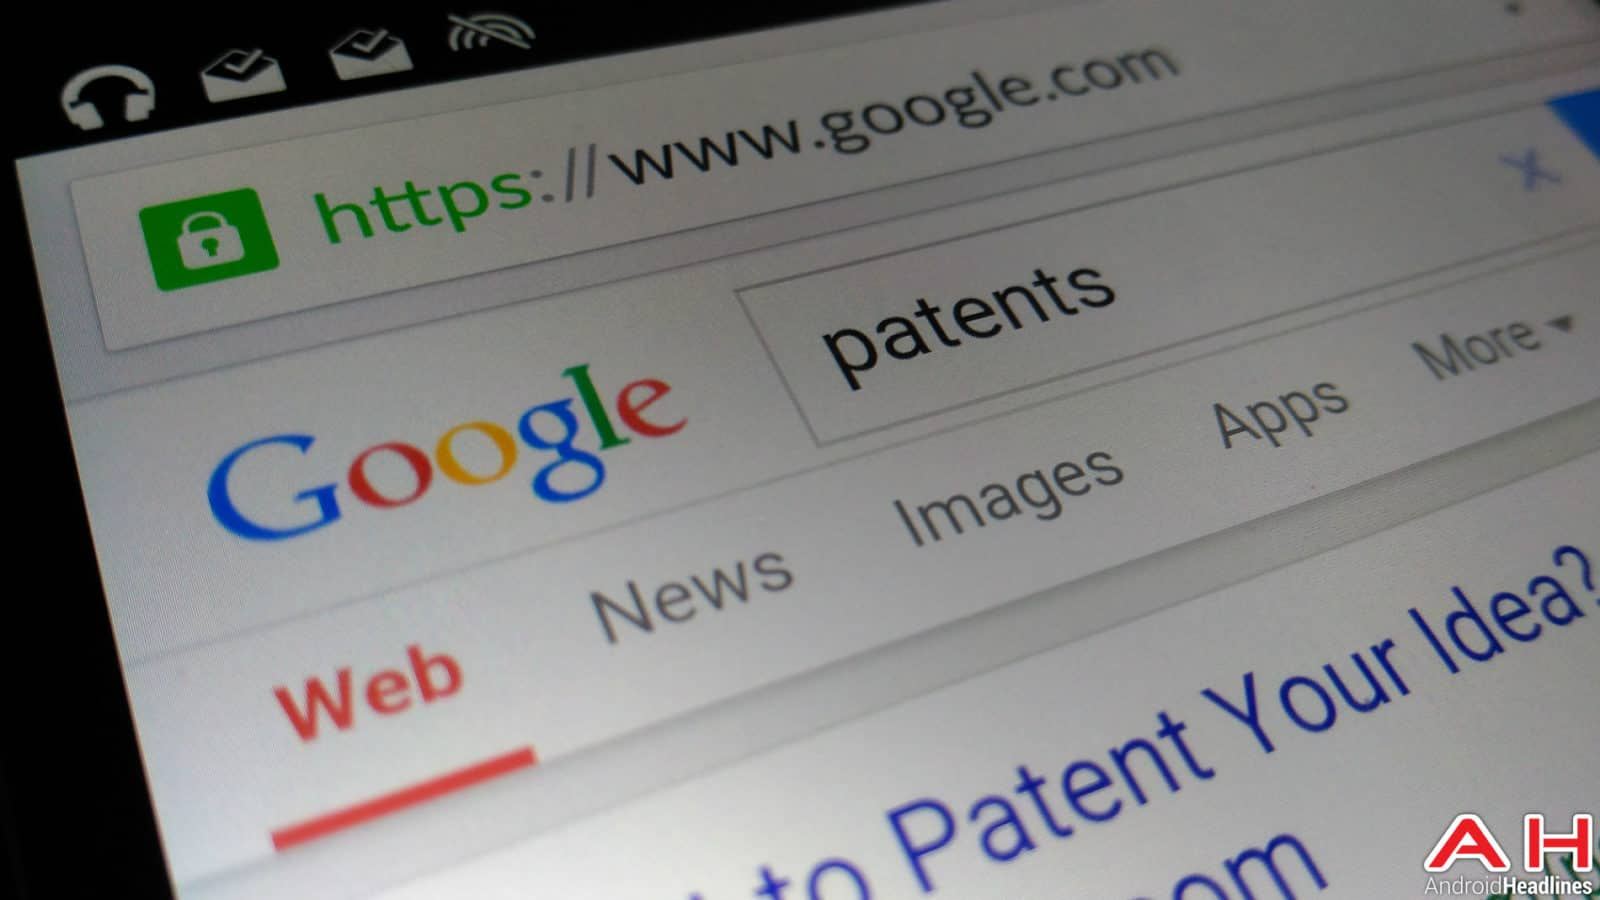 Google Patents AH